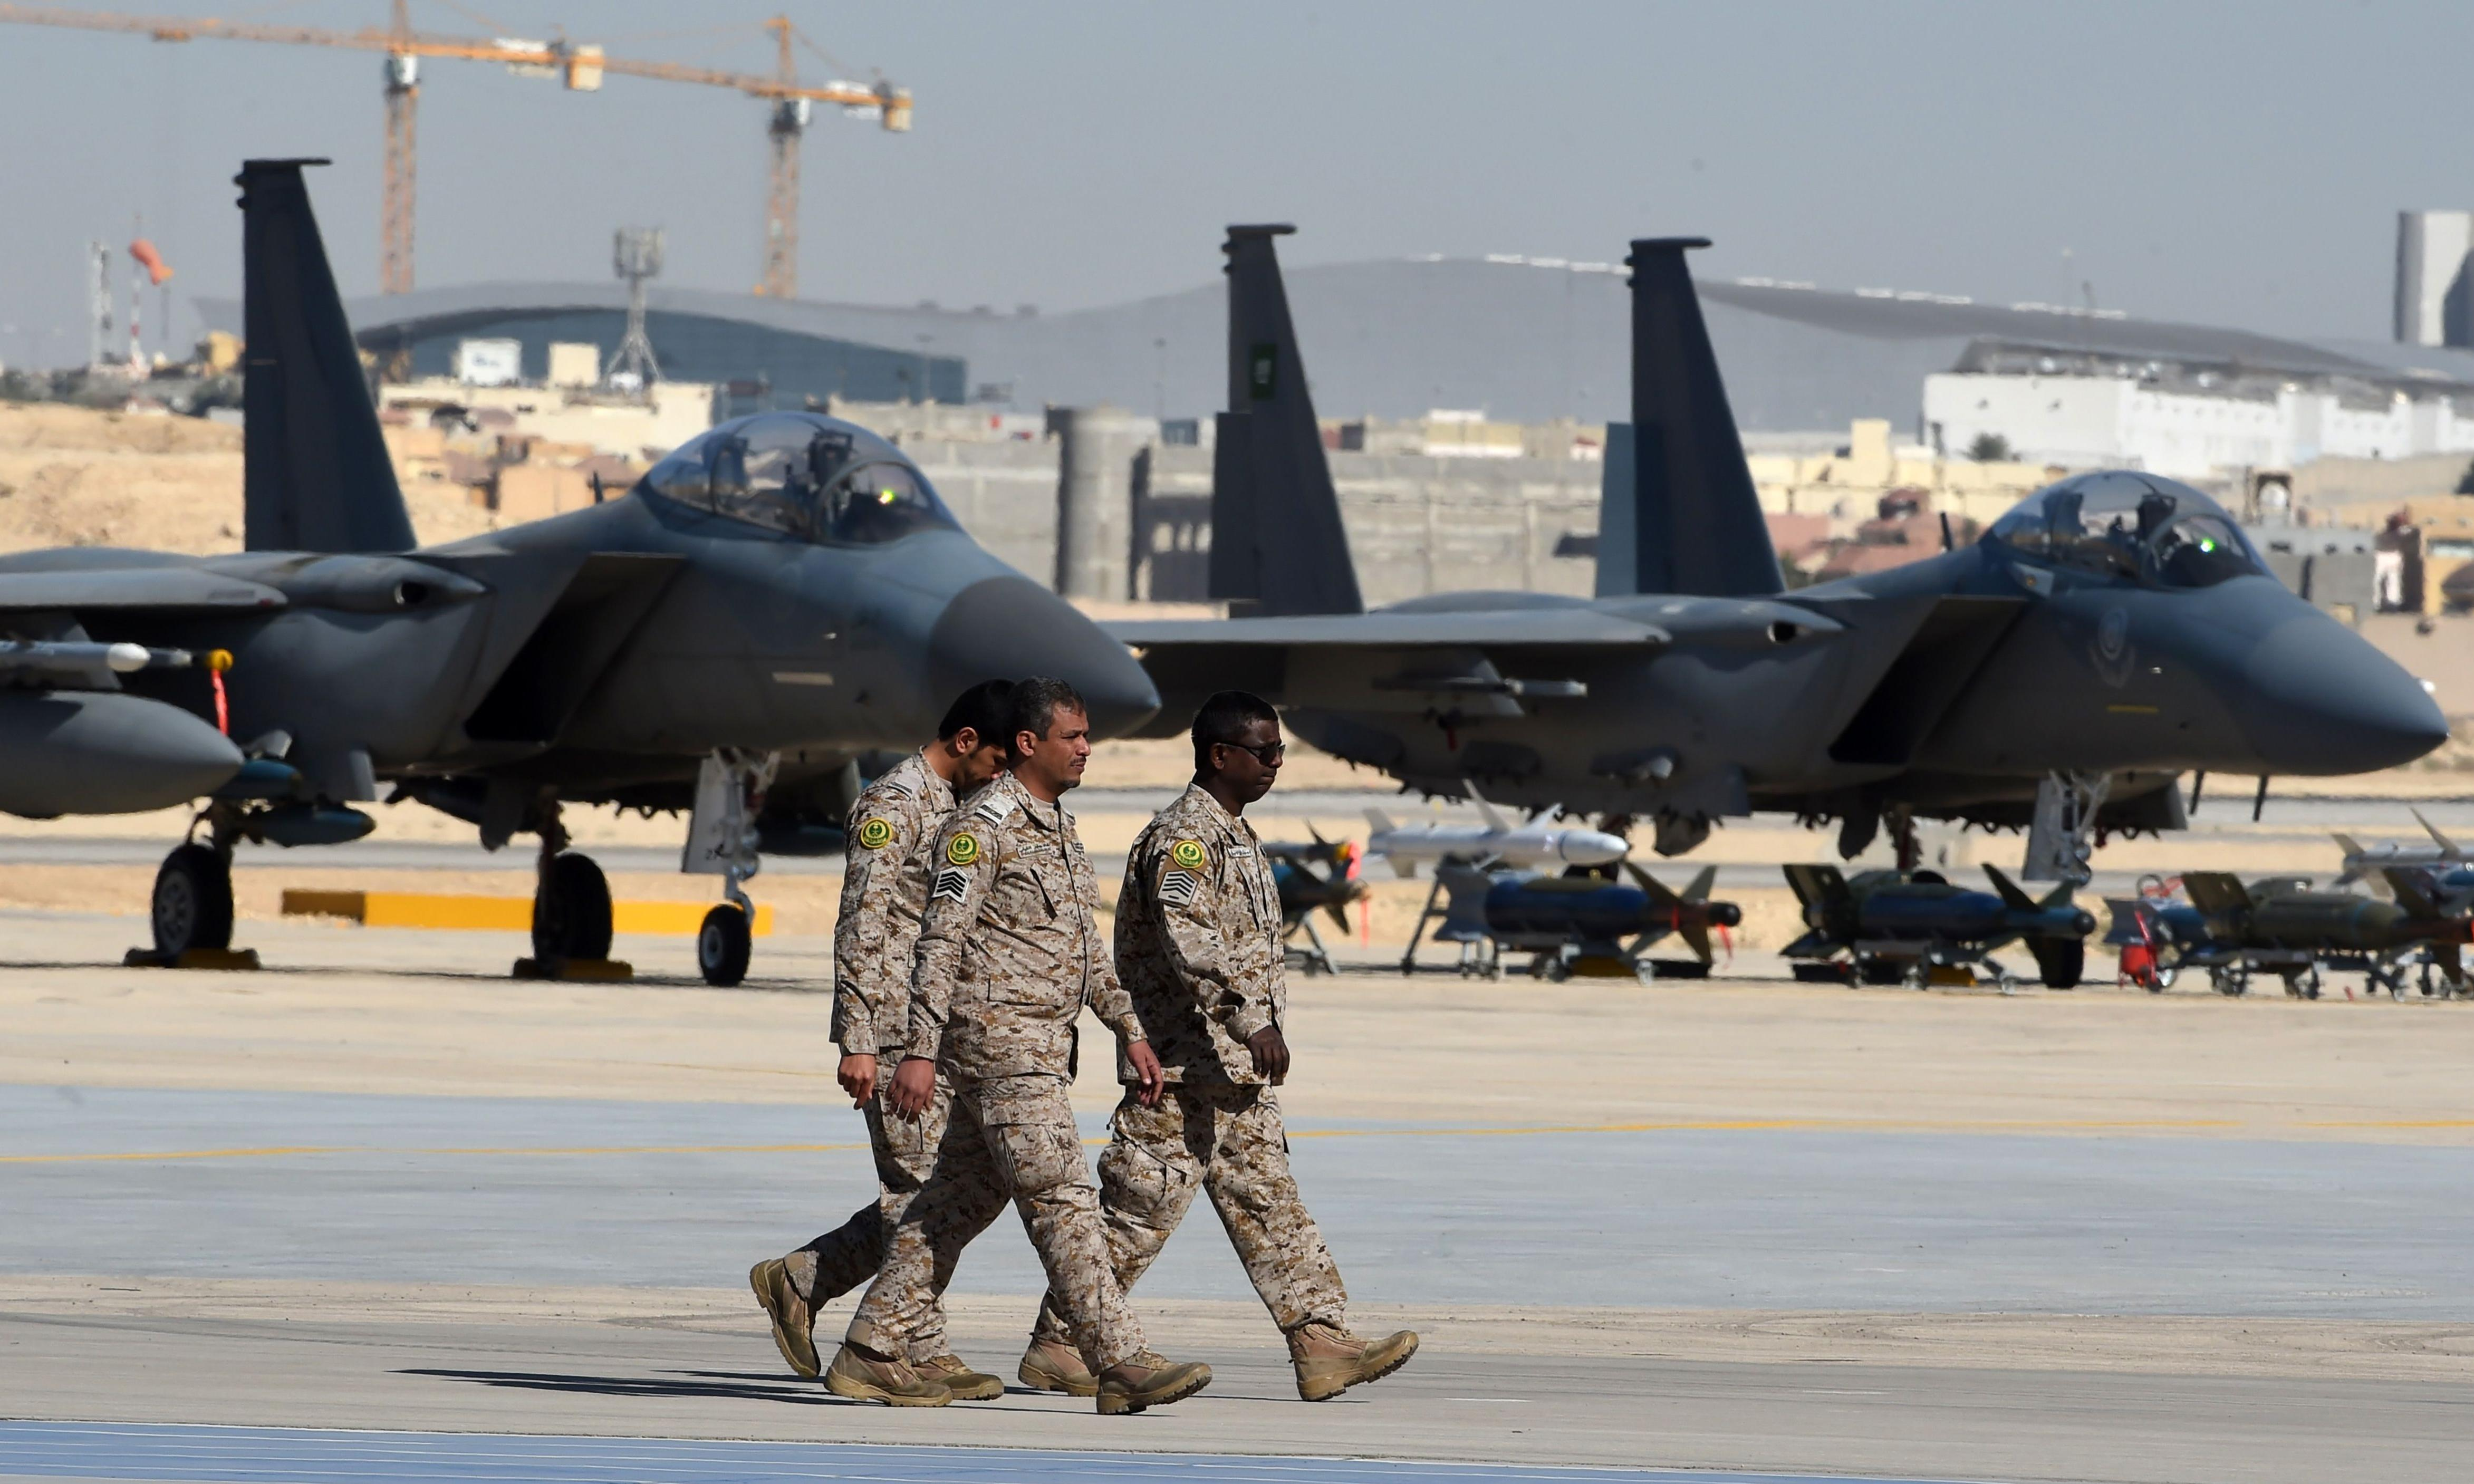 Nearly half of US arms exports go to the Middle East